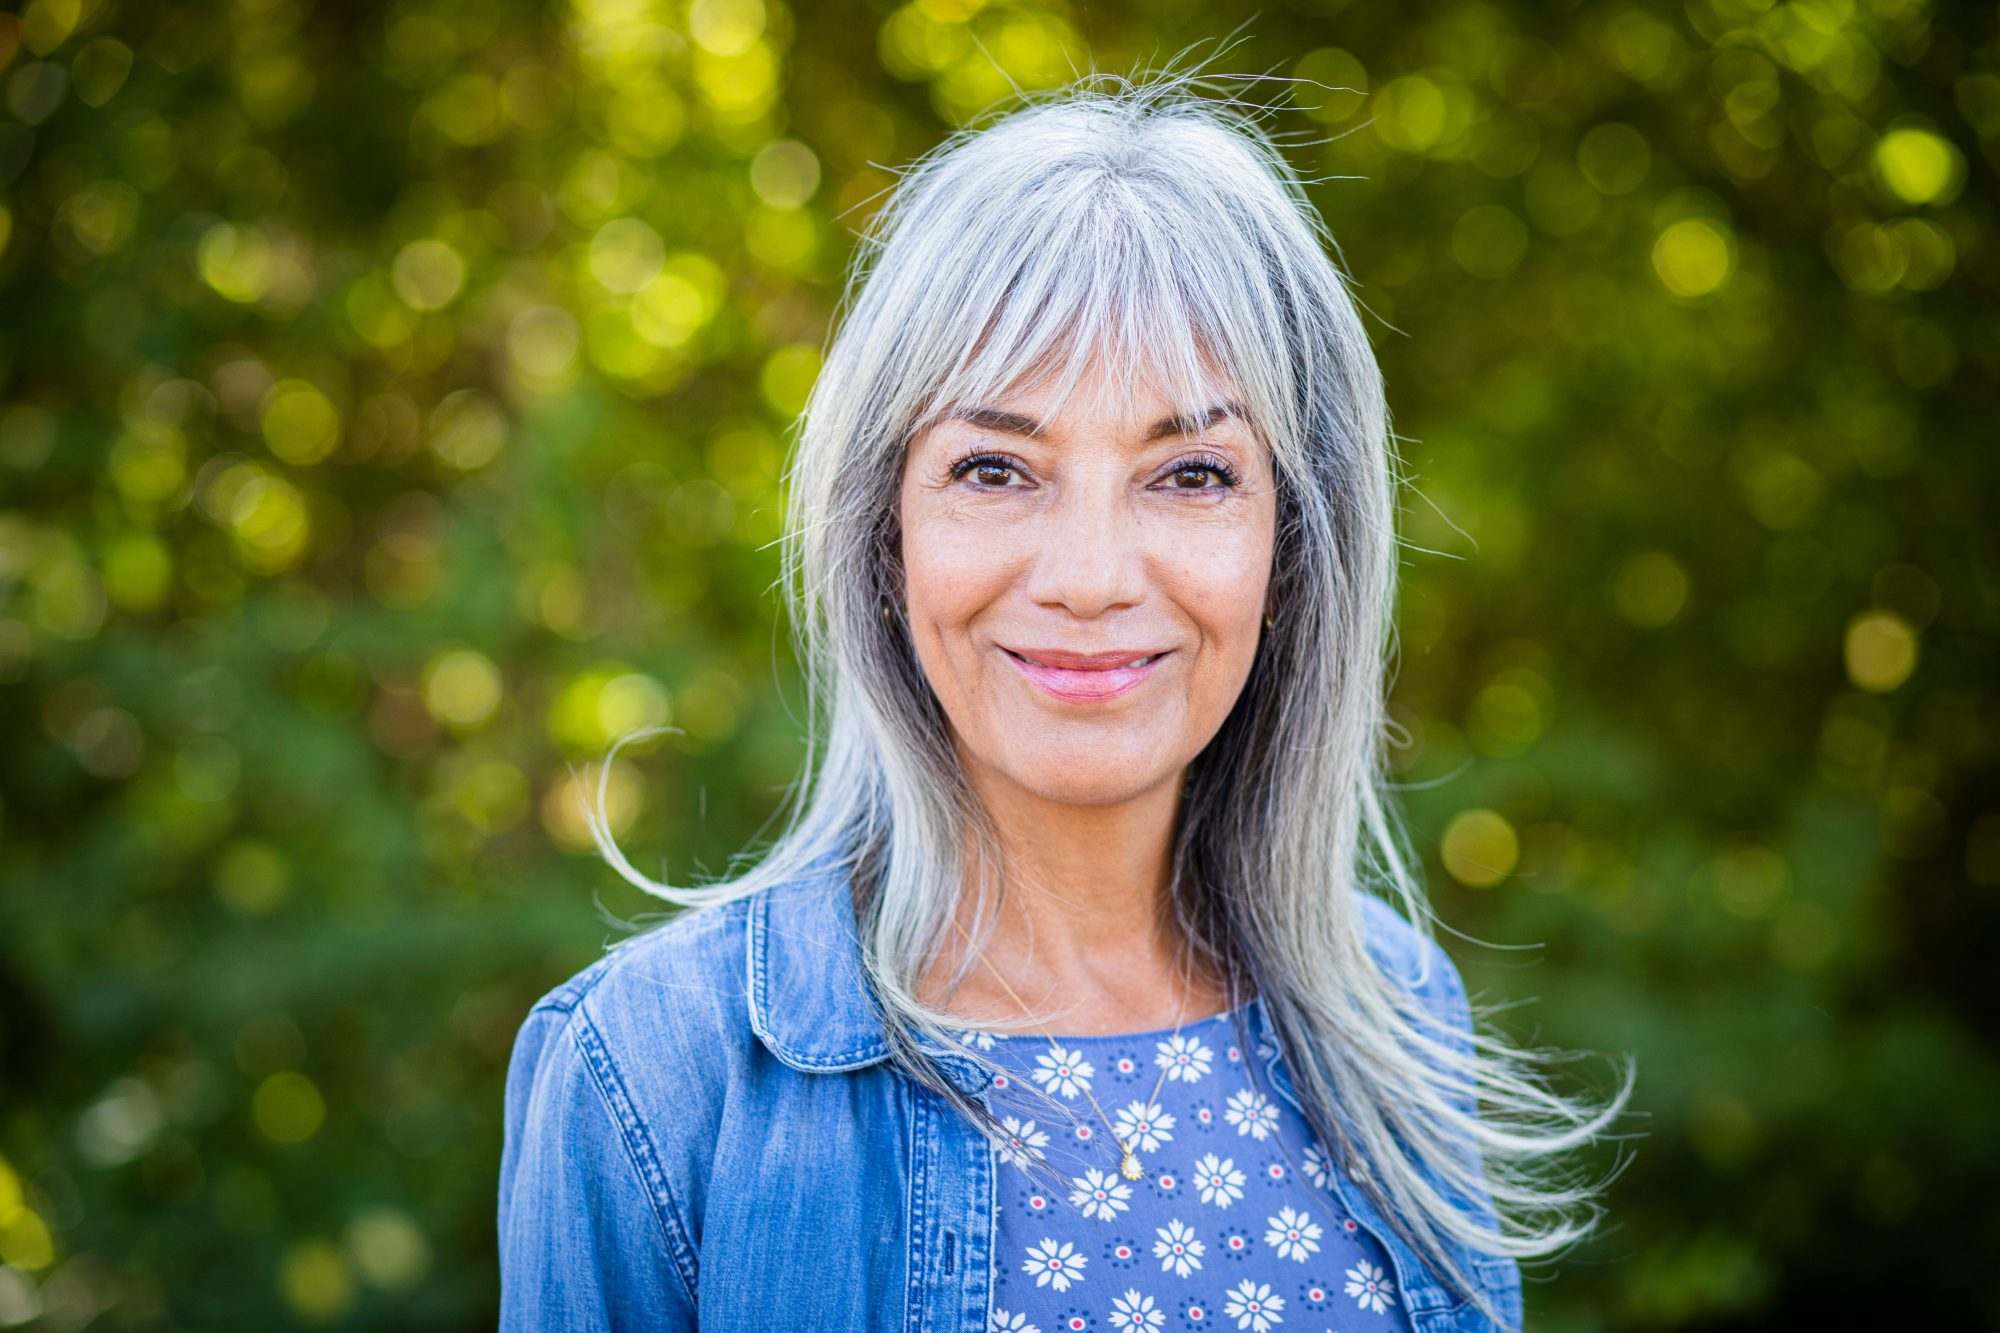 Woman with Gray Hair and Bangs Smiling